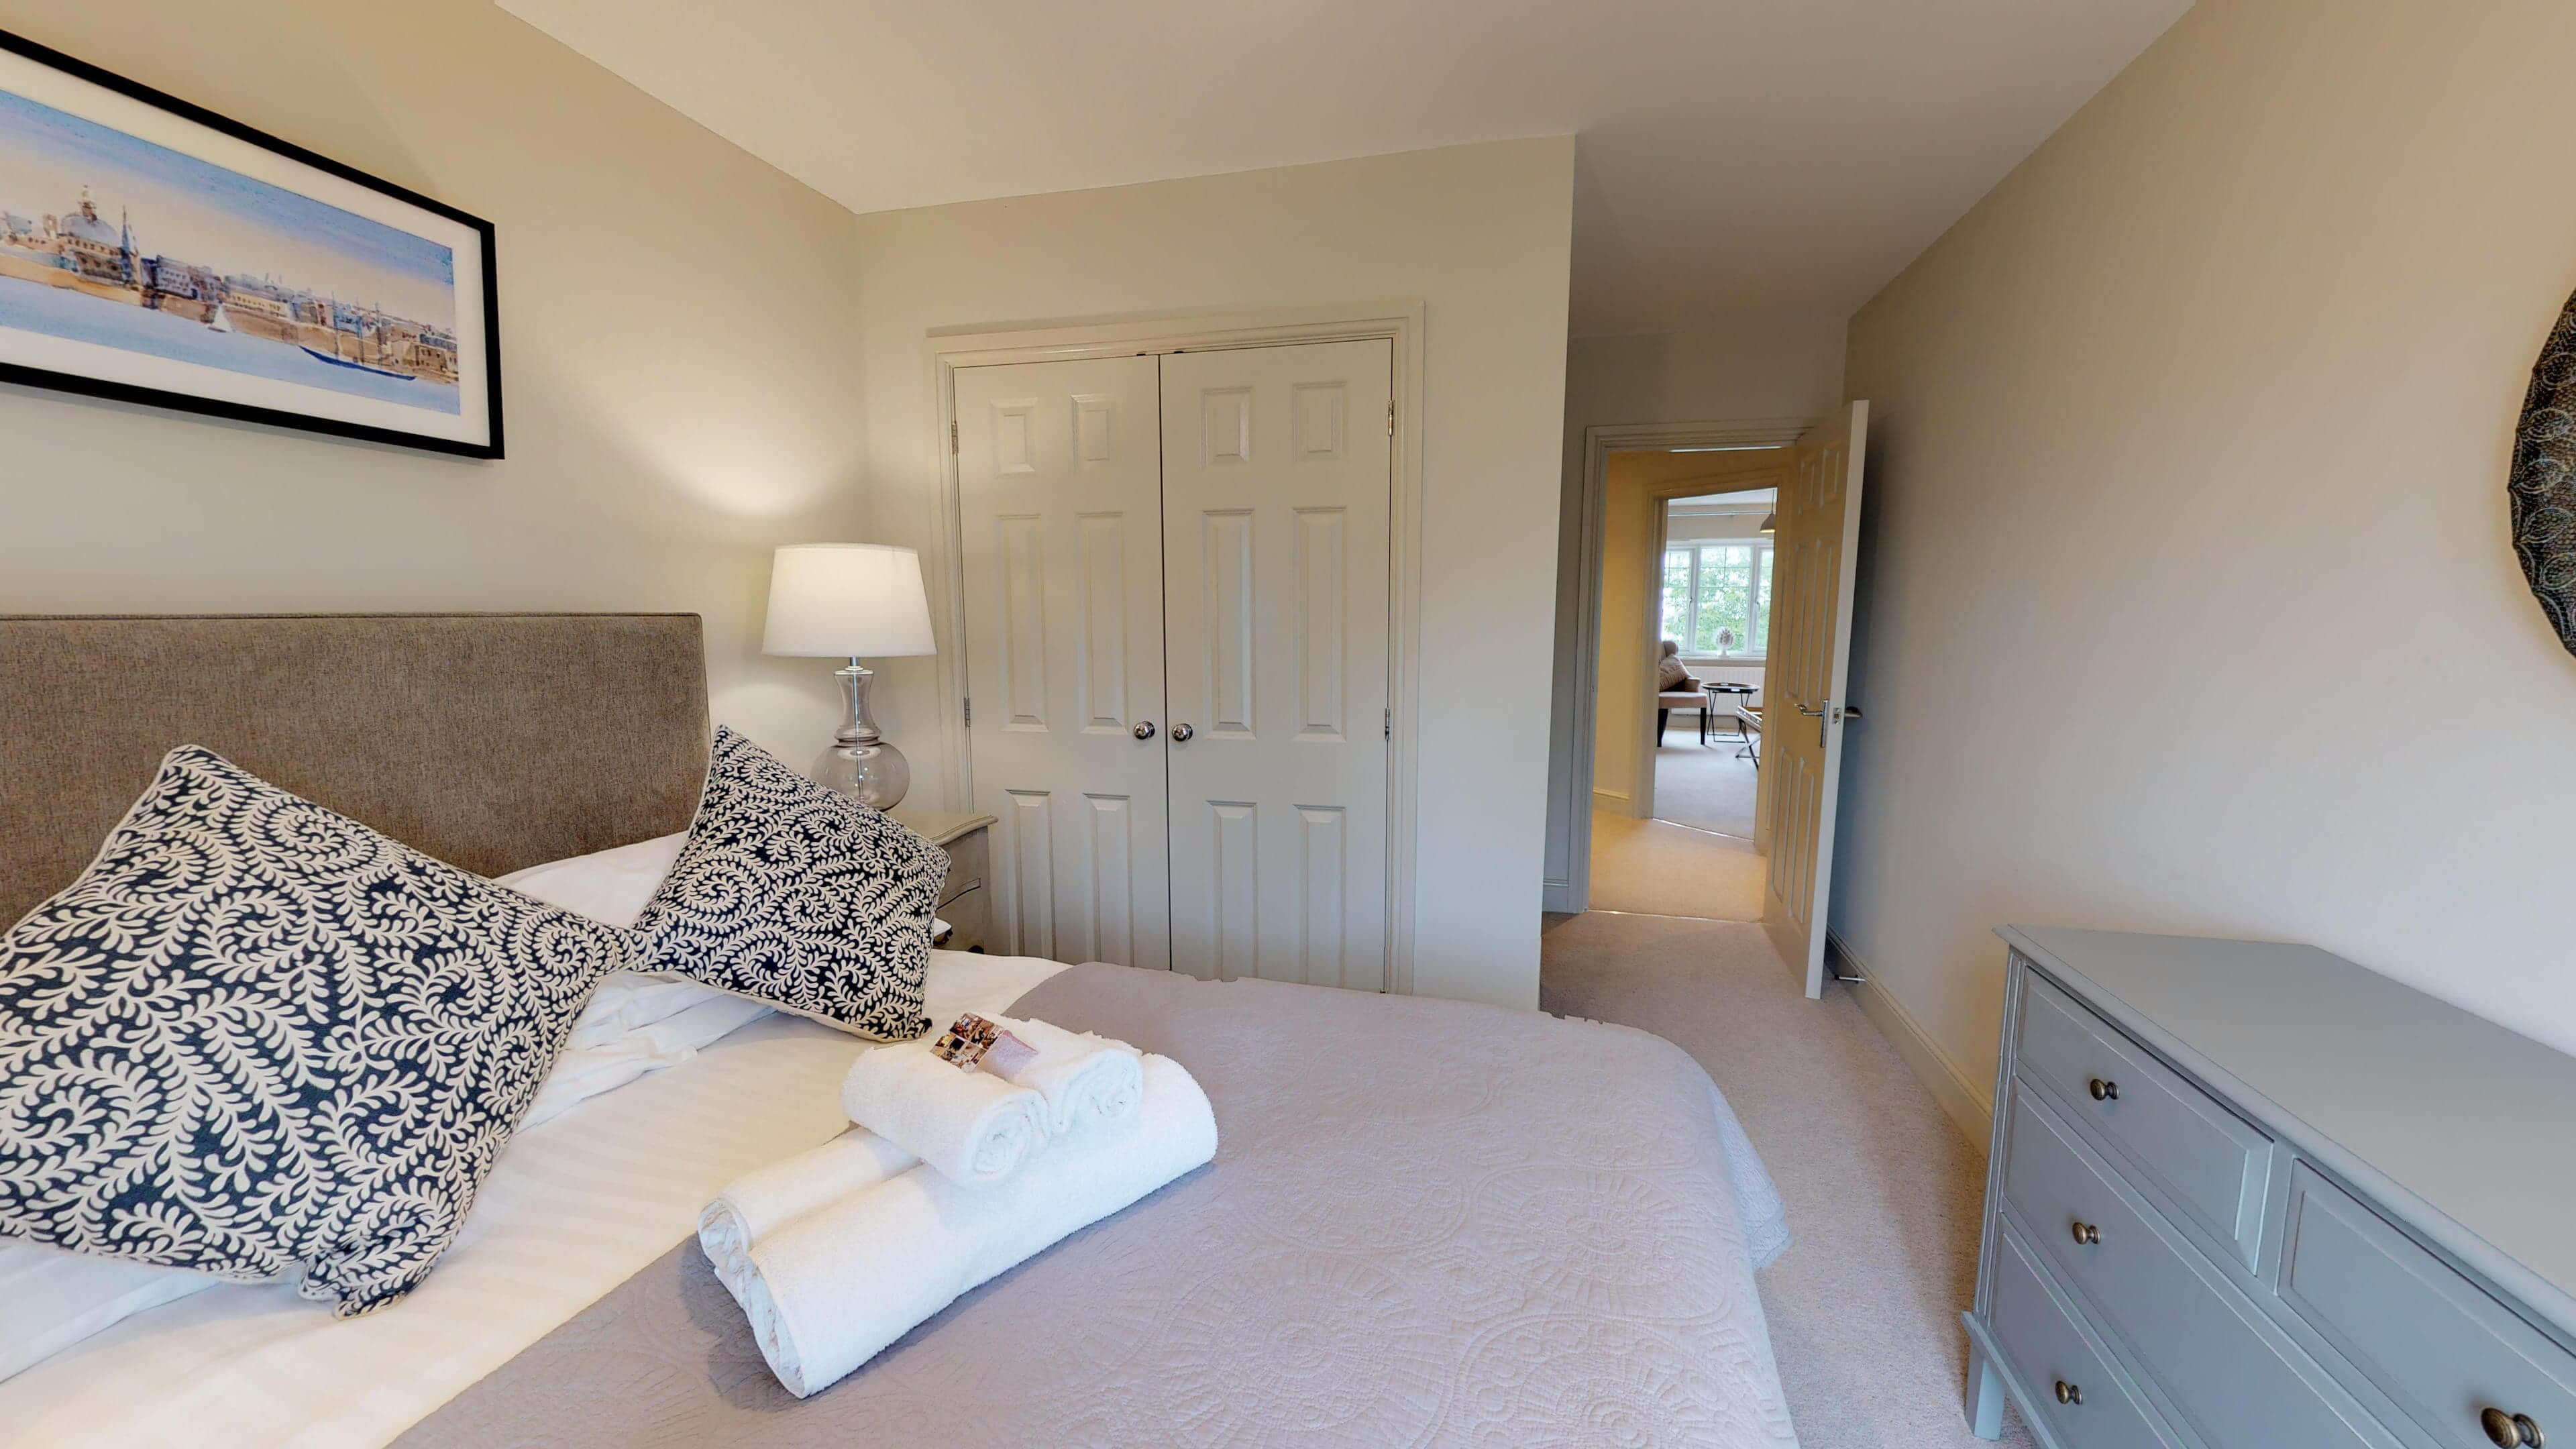 Oxford Serviced Apartments Hensington Suite Bedroom One View